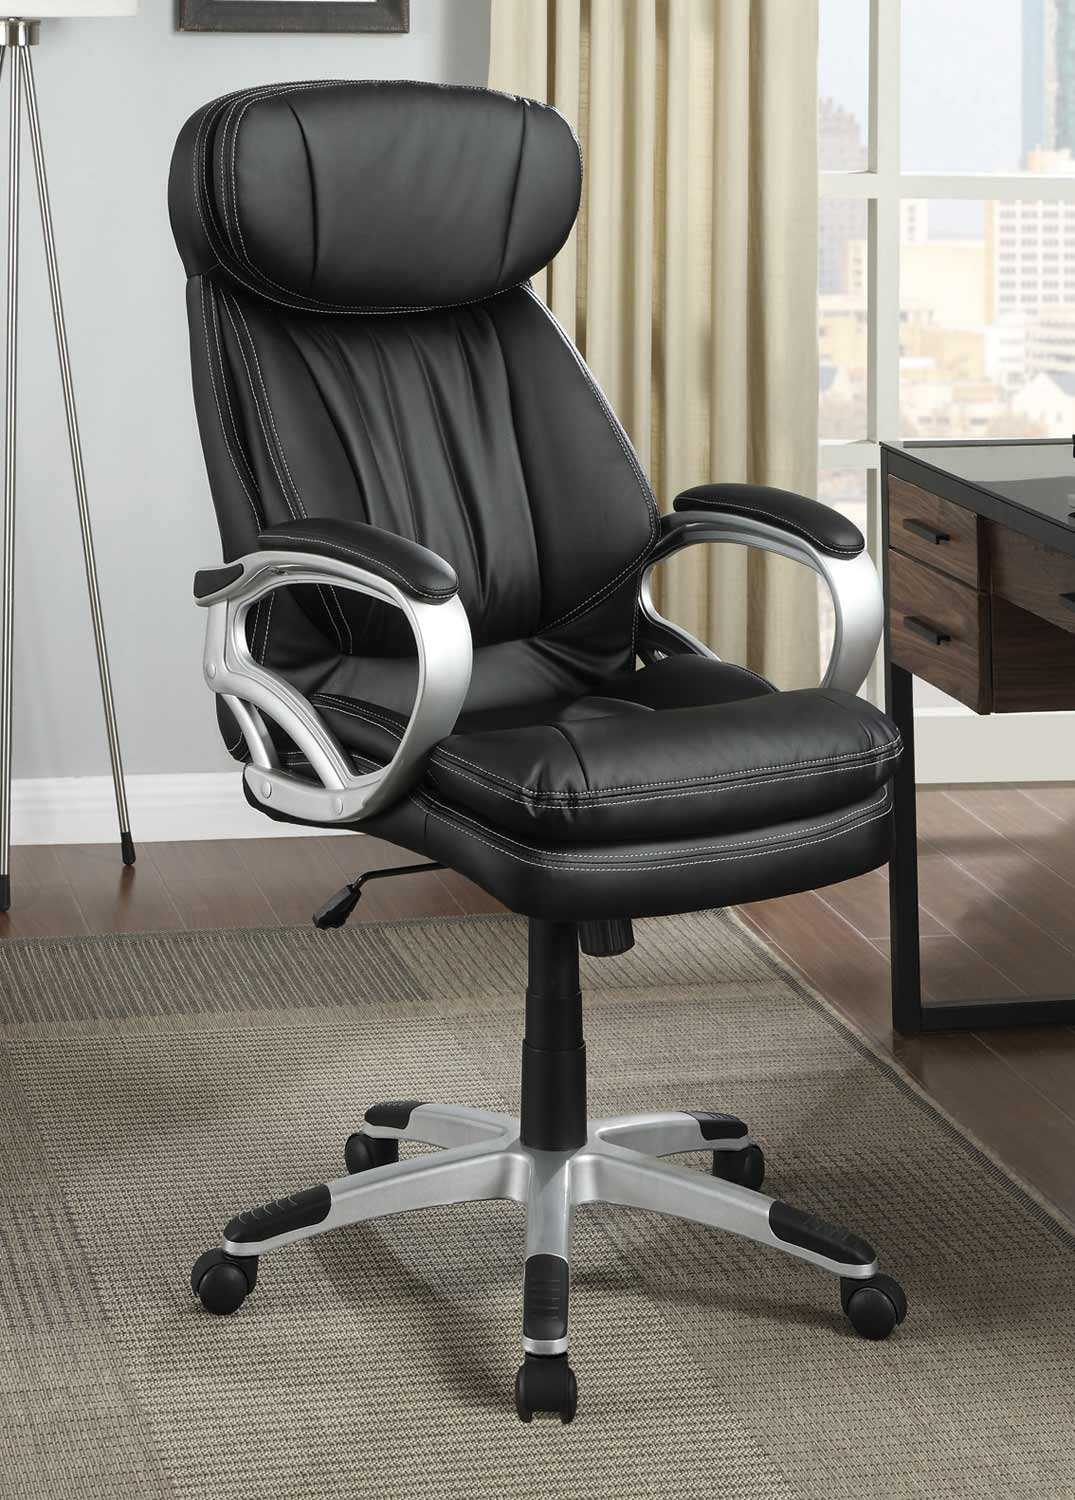 Coaster 800165 Office Chair - Black